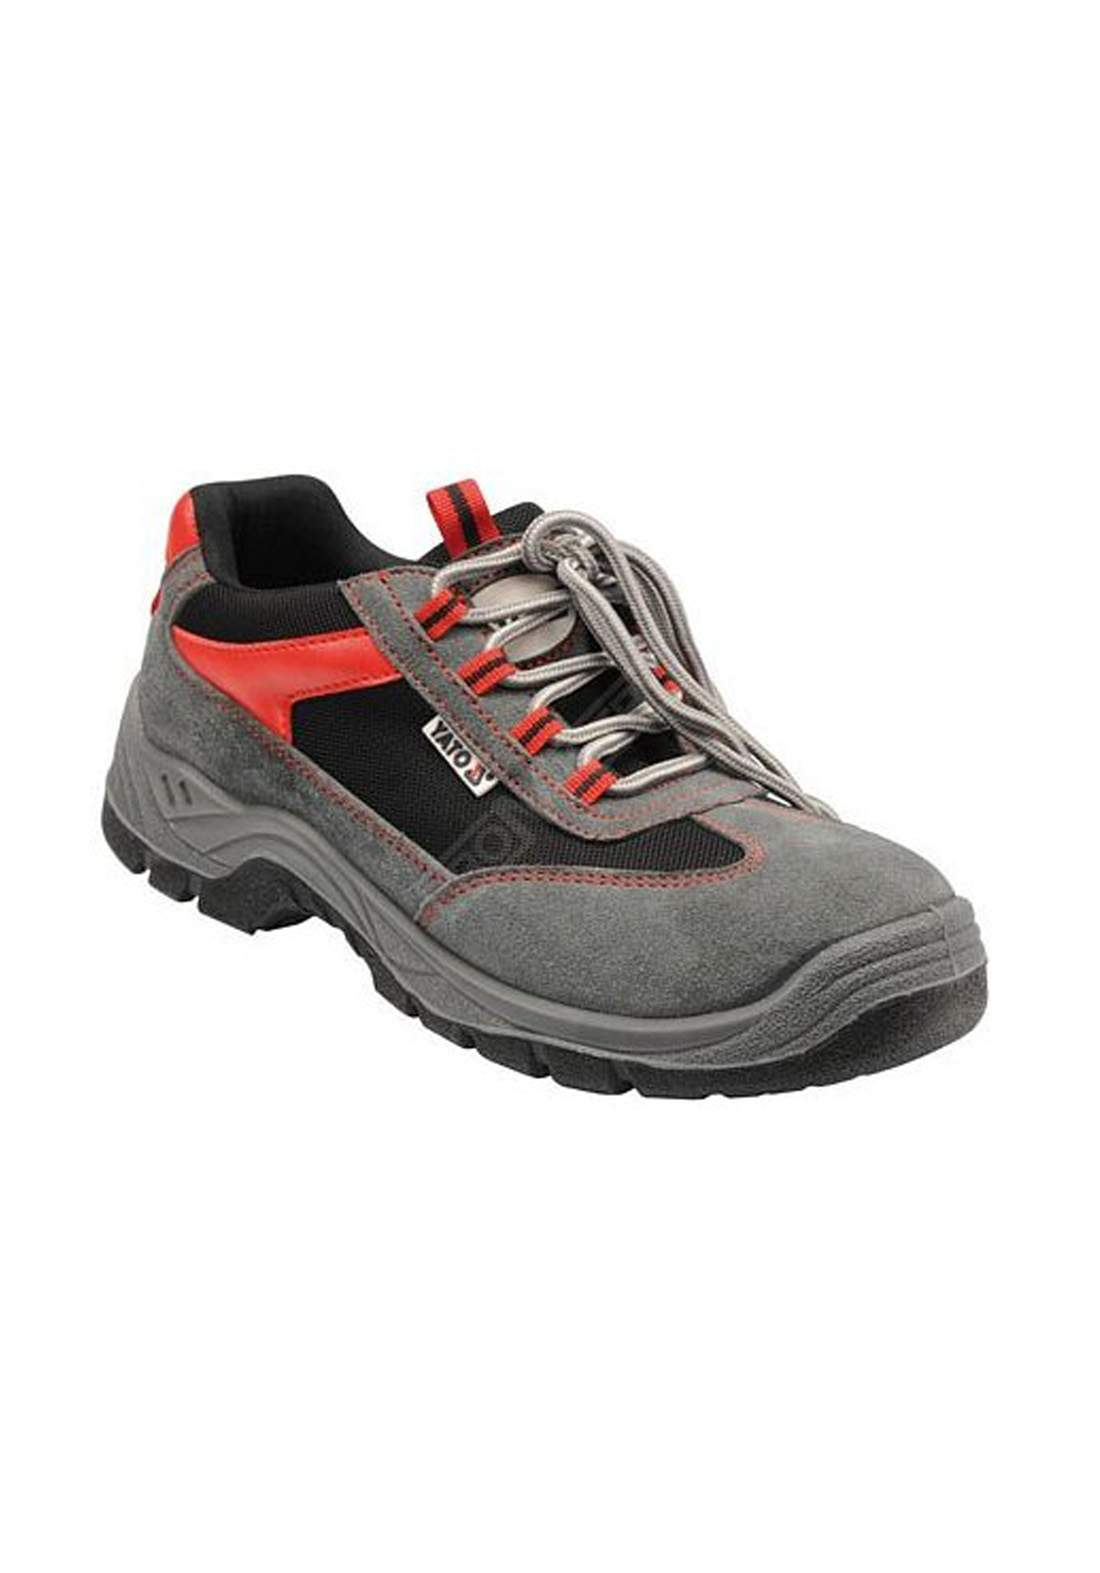 Yato Low-Cut Safety Shoes حذاء امان